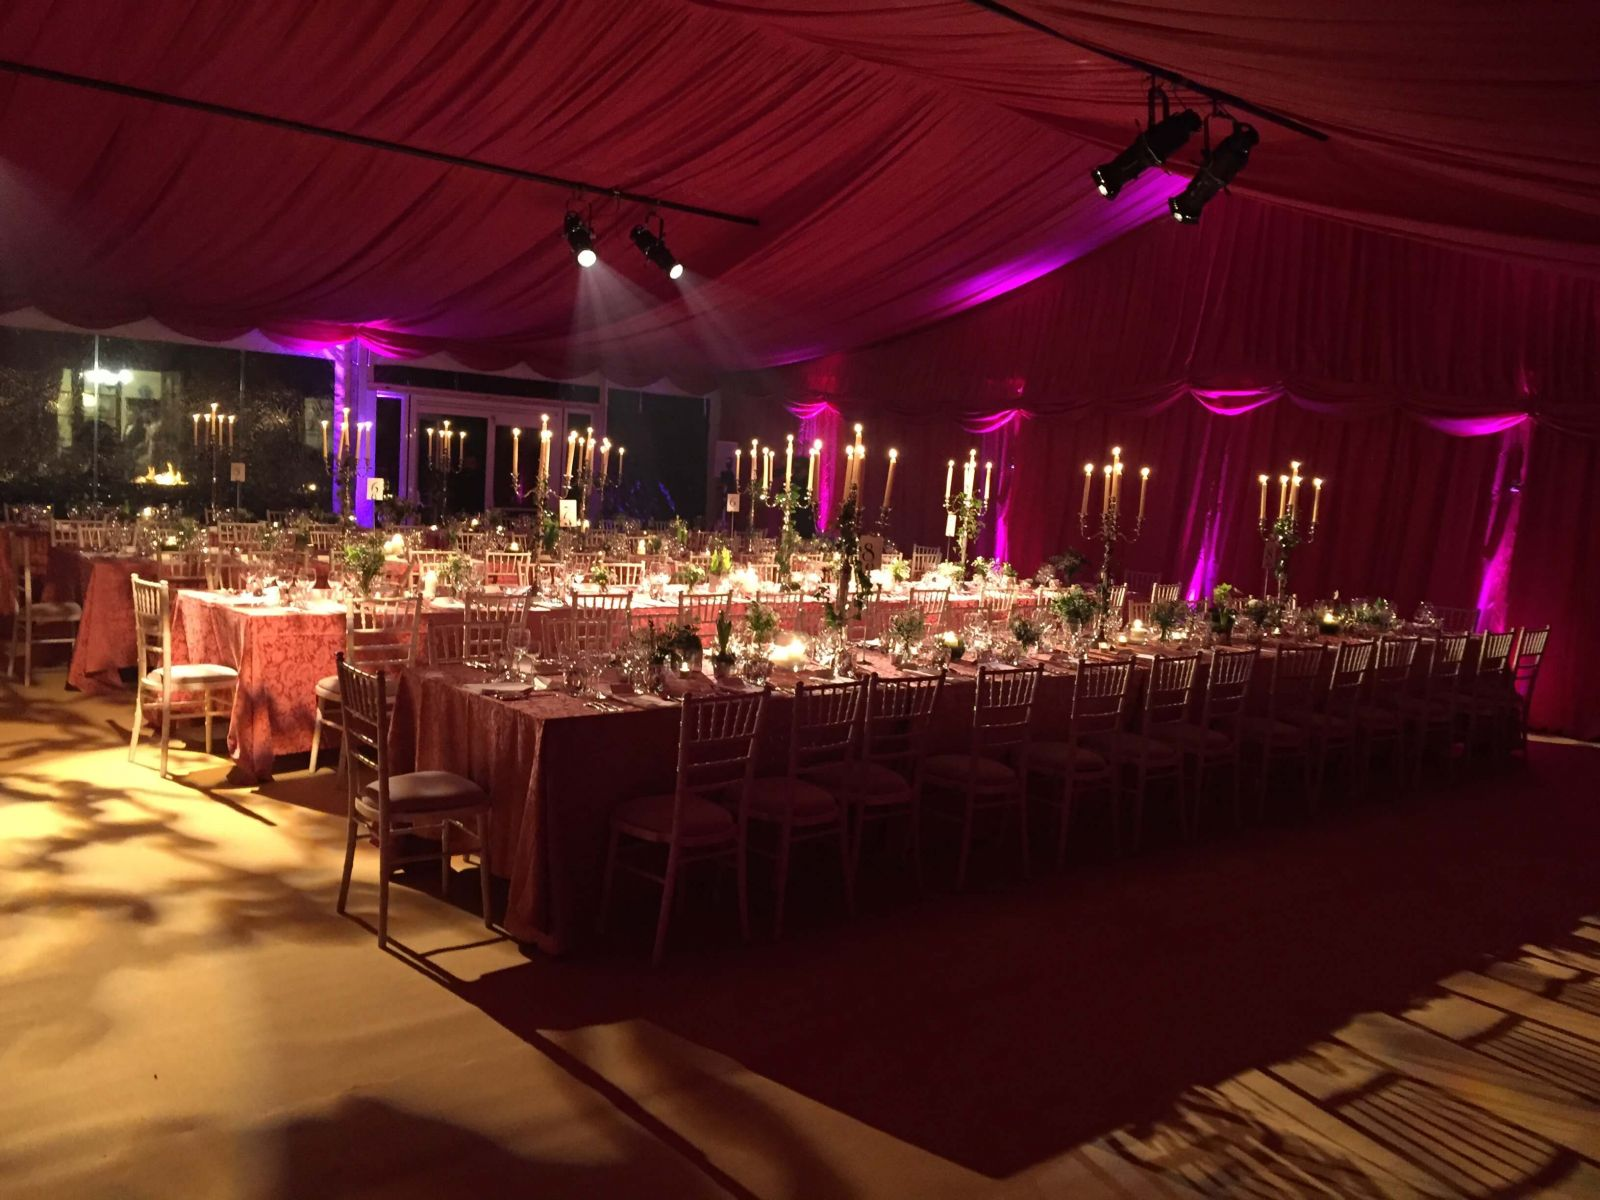 Burgundy linings, with dramatic lighting, for this New Years Eve marquee wedding